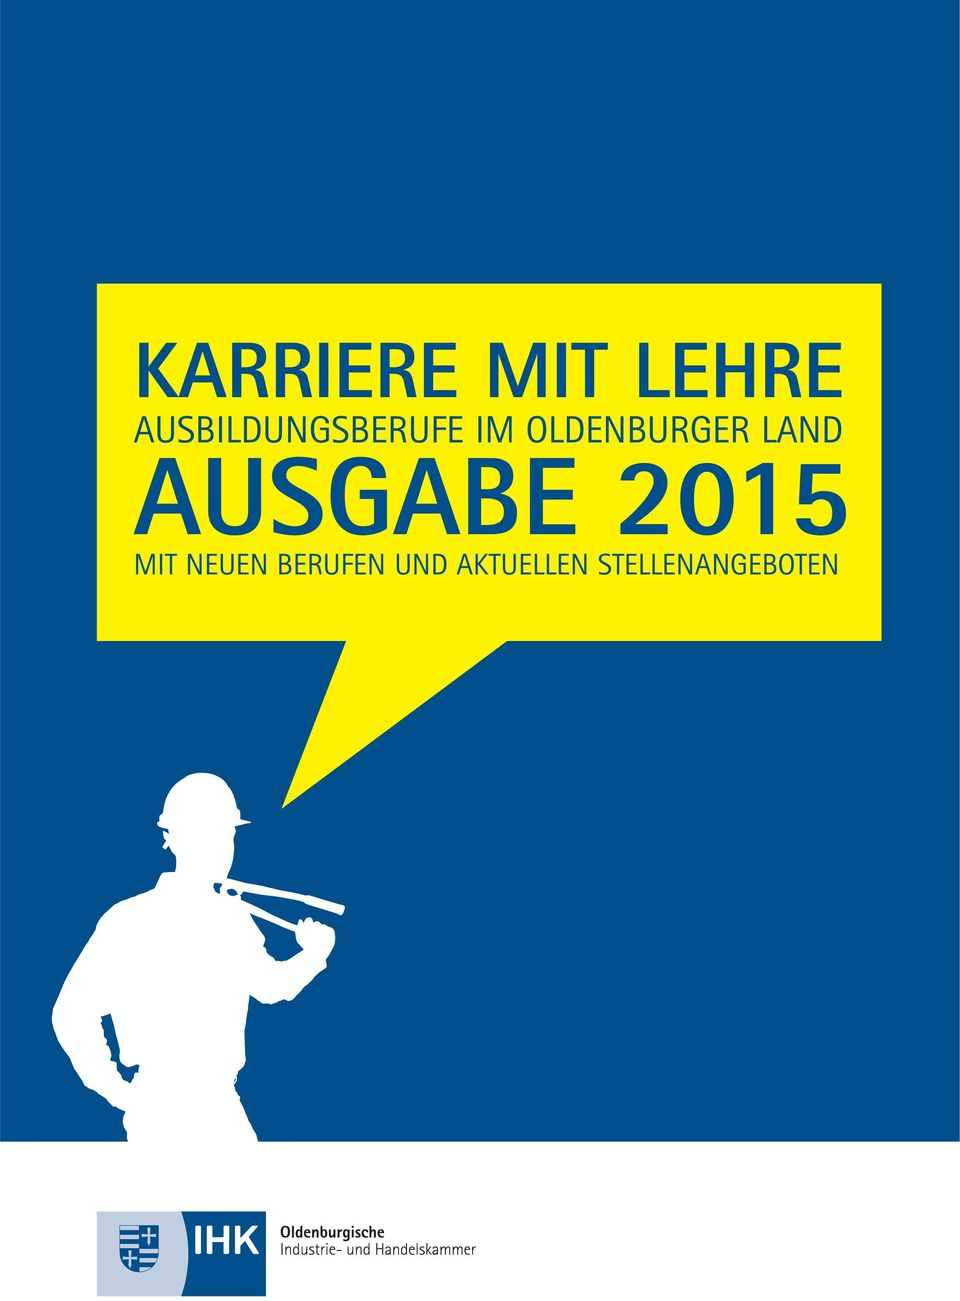 OLDENBURGER LAND AUSGABE 2015